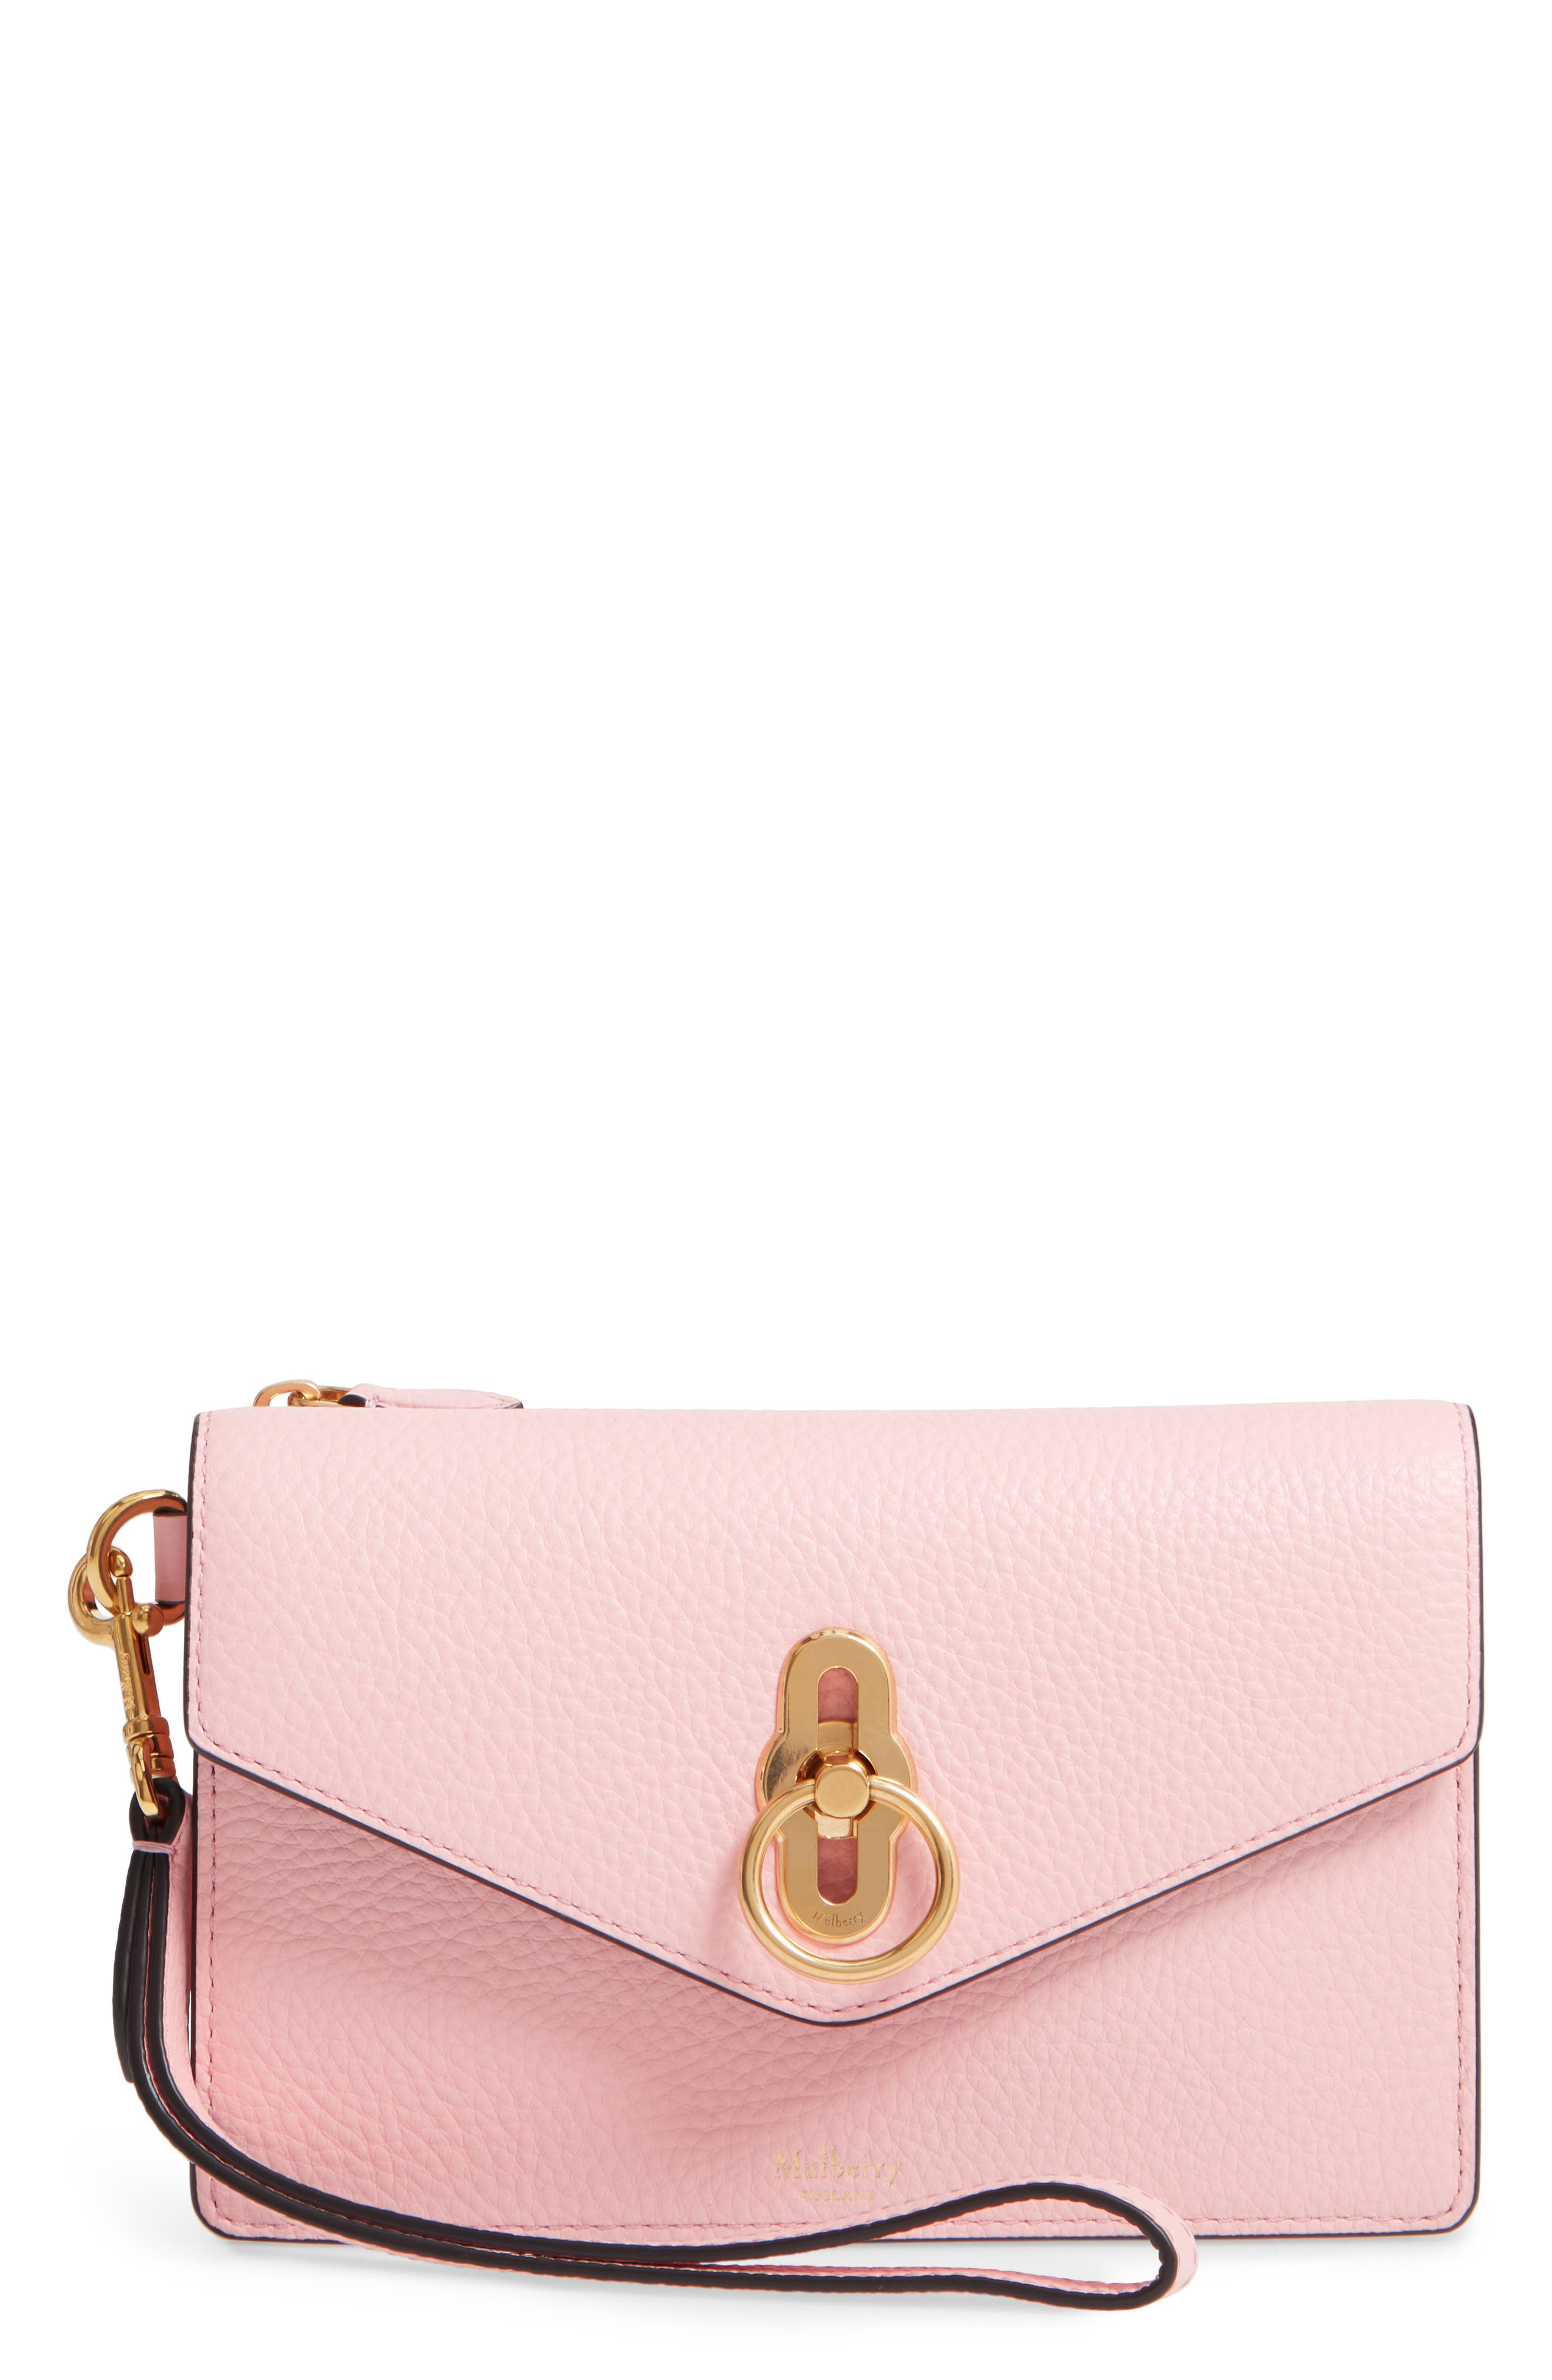 MULBERRY Amberley Iphone Leather Clutch - Pink in Sorbet Pink